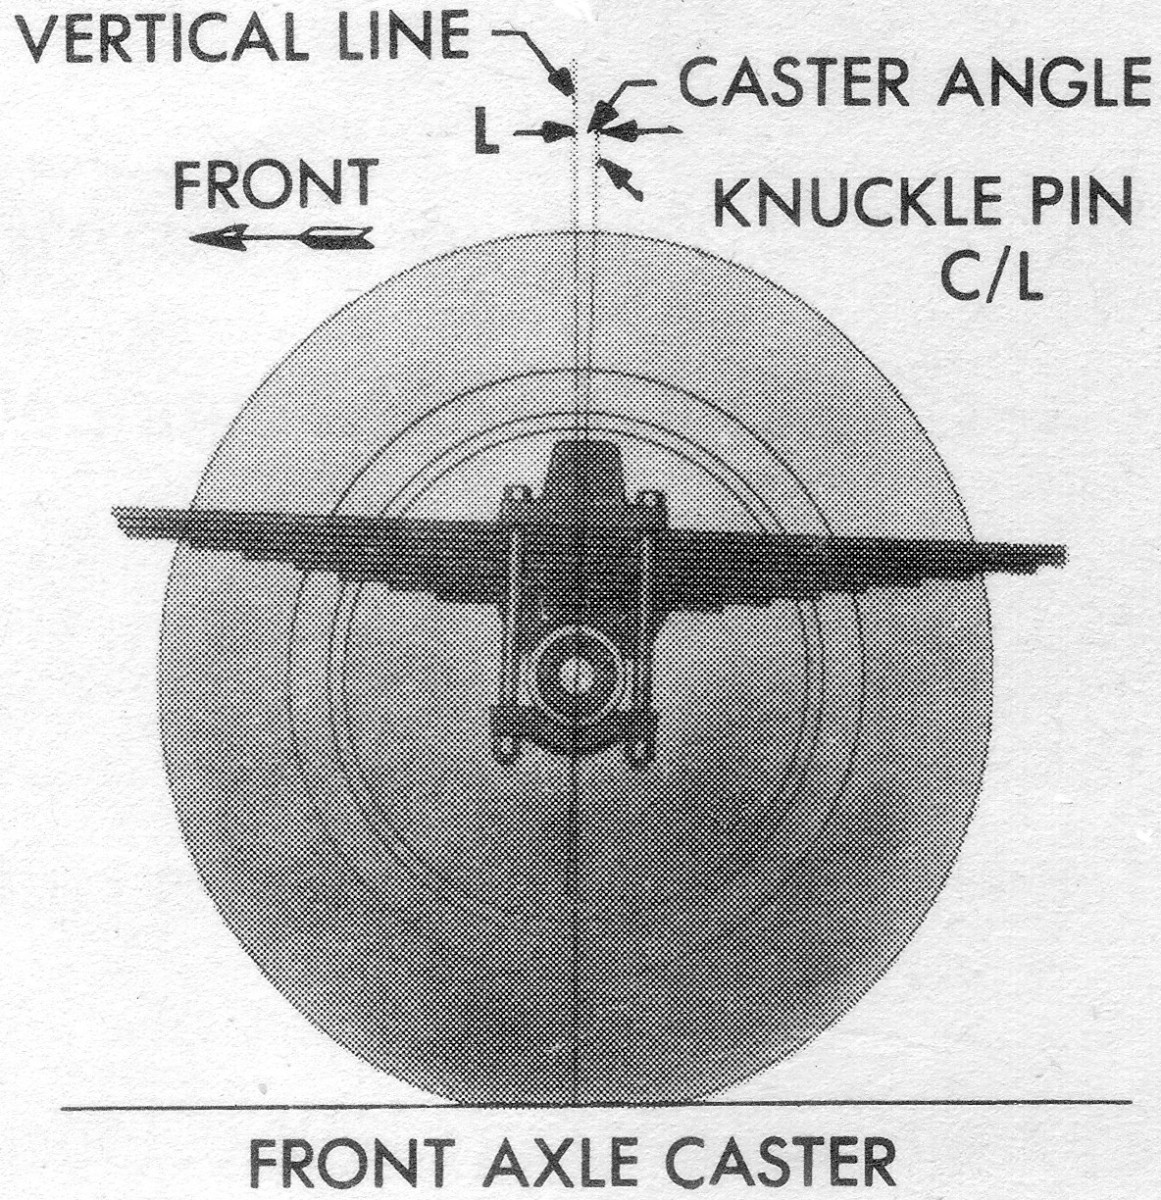 The first of the three main factors in front end alignment is CASTER. Caster is the angle, measured in degrees, that a vehicle's steering knuckle pivots are tilted away from vertical when viewed from the side. Most road vehicles have positive caster: the pivots are tilted back toward the rear of the vehicle.